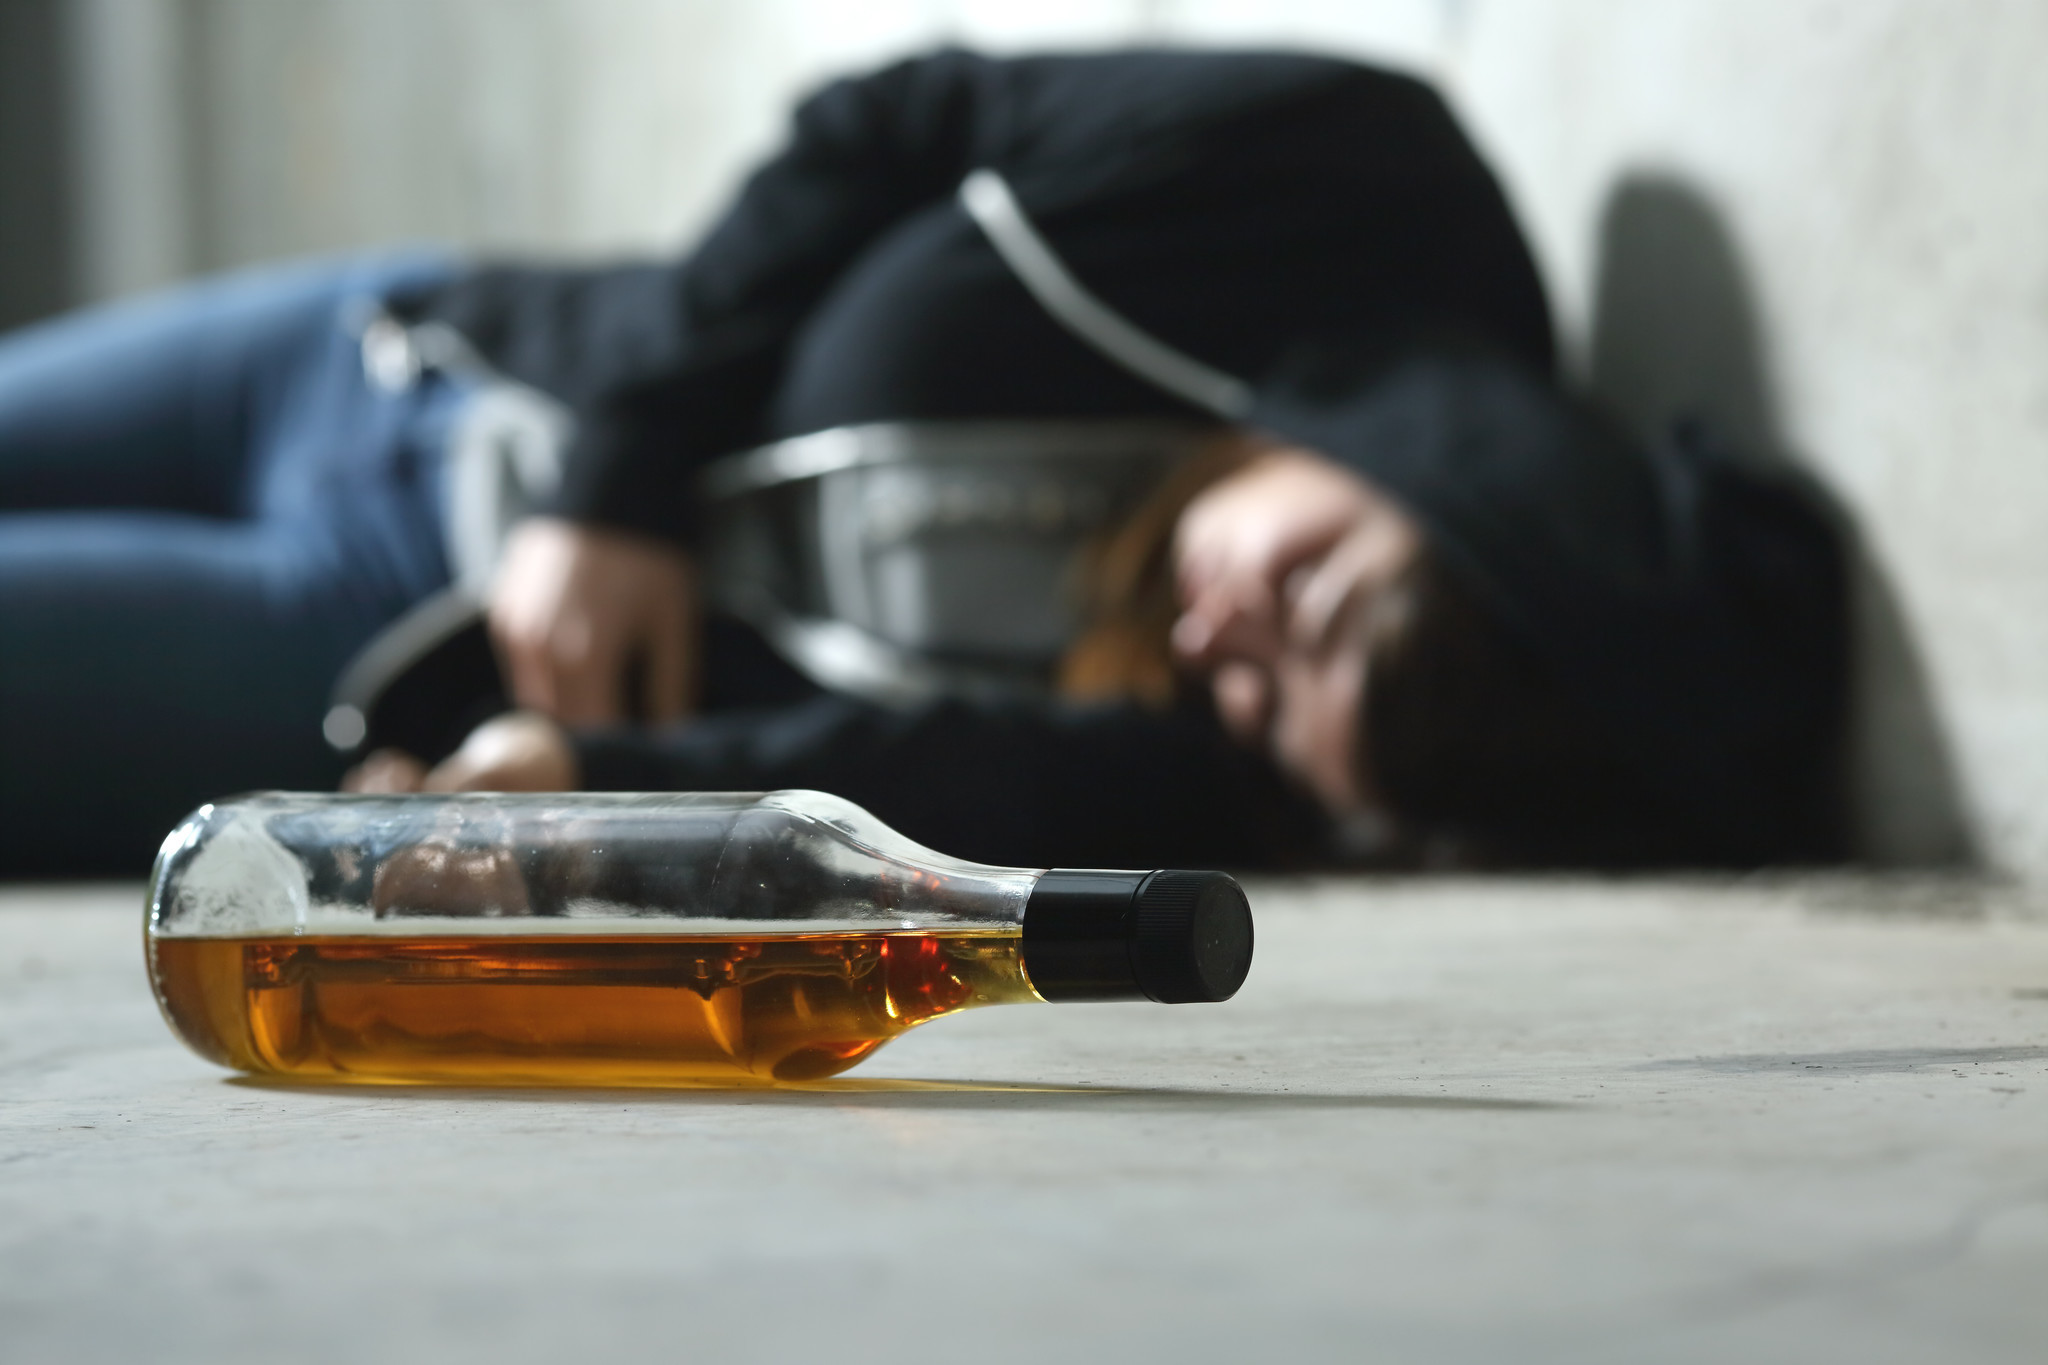 Man posts up at New Haven restaurant amid lockdown, sleeping and drinking the booze